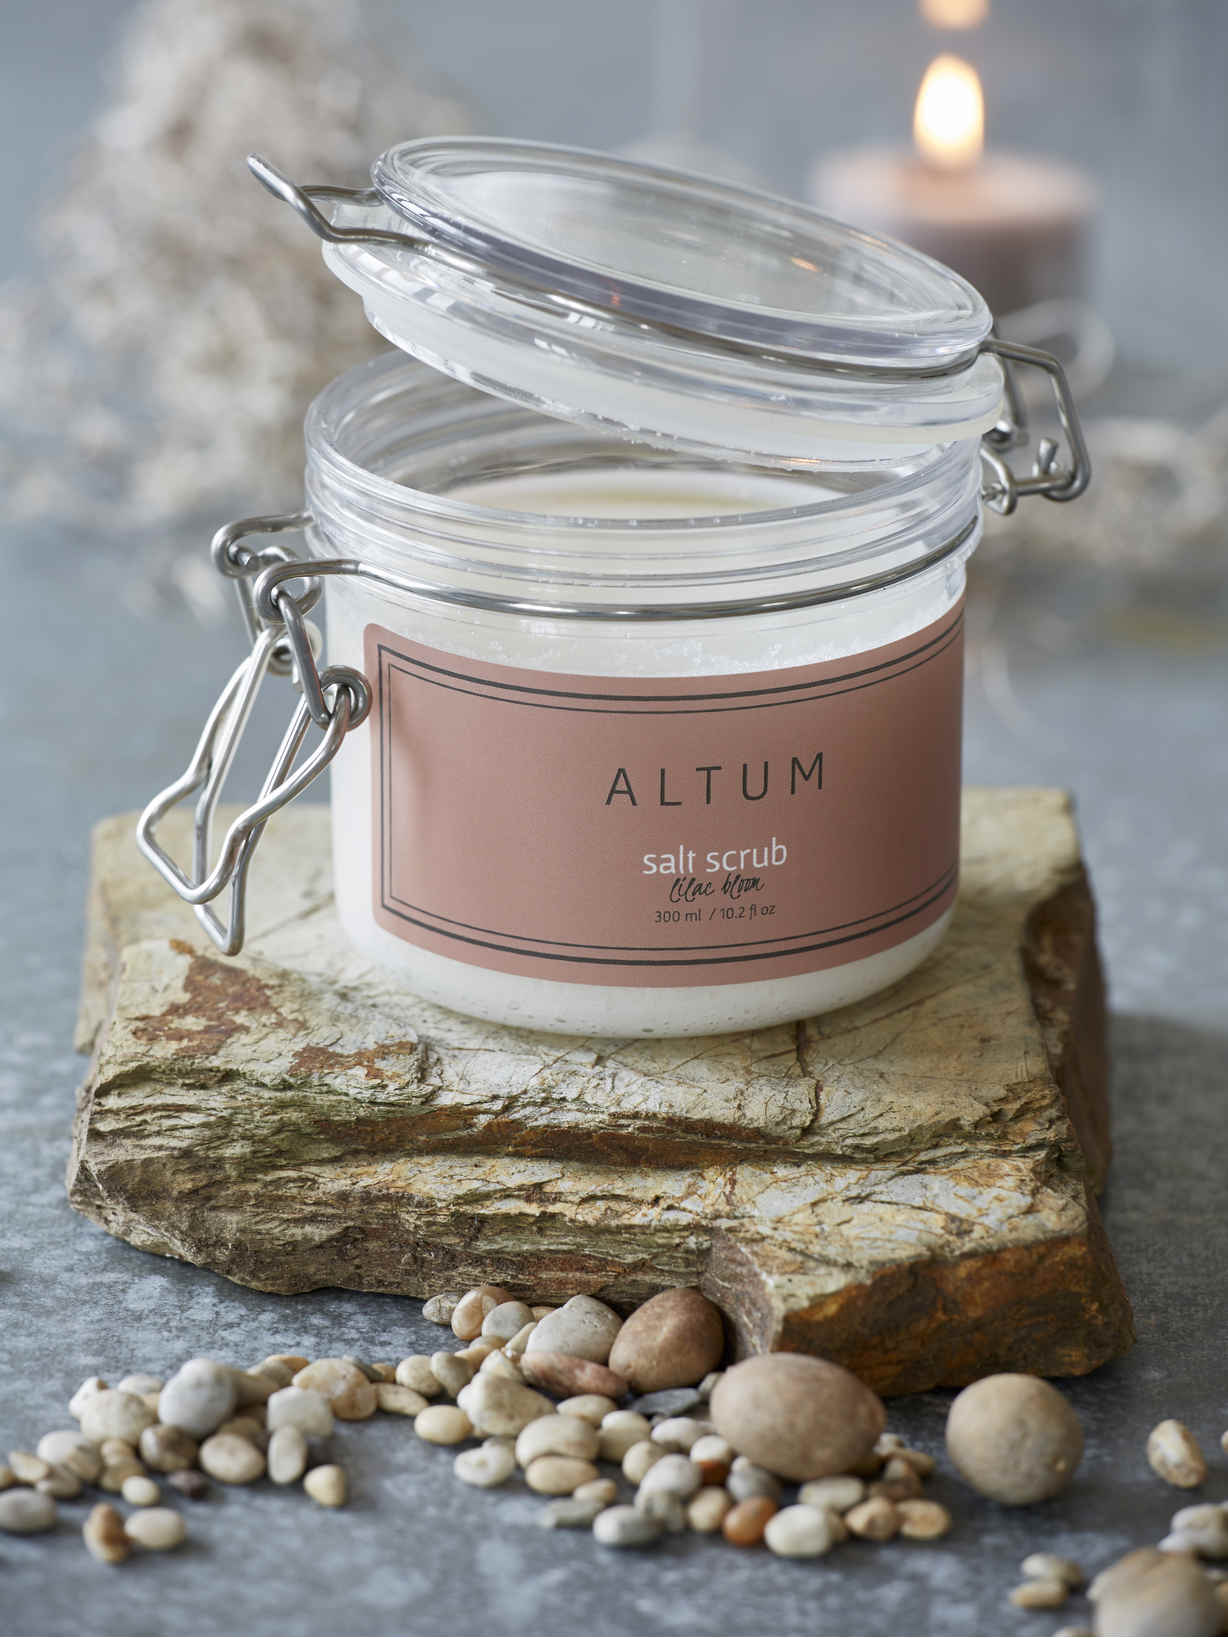 Nordic House Altum Salt Scrub - Lilac Bloom